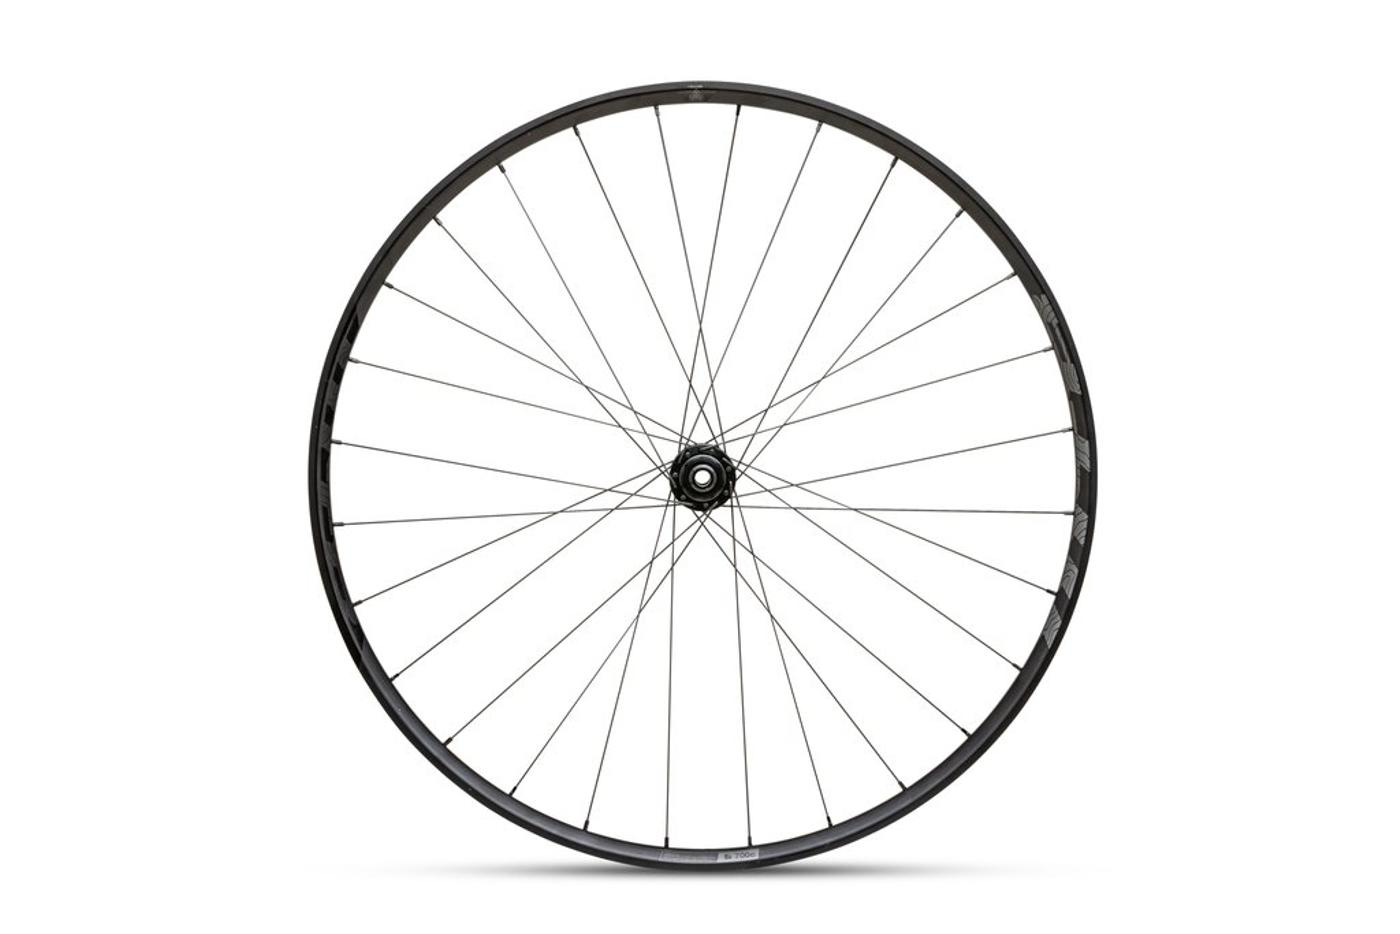 WTB's Wheels Return with MTB and Gravel Proterra Light and Tough Models